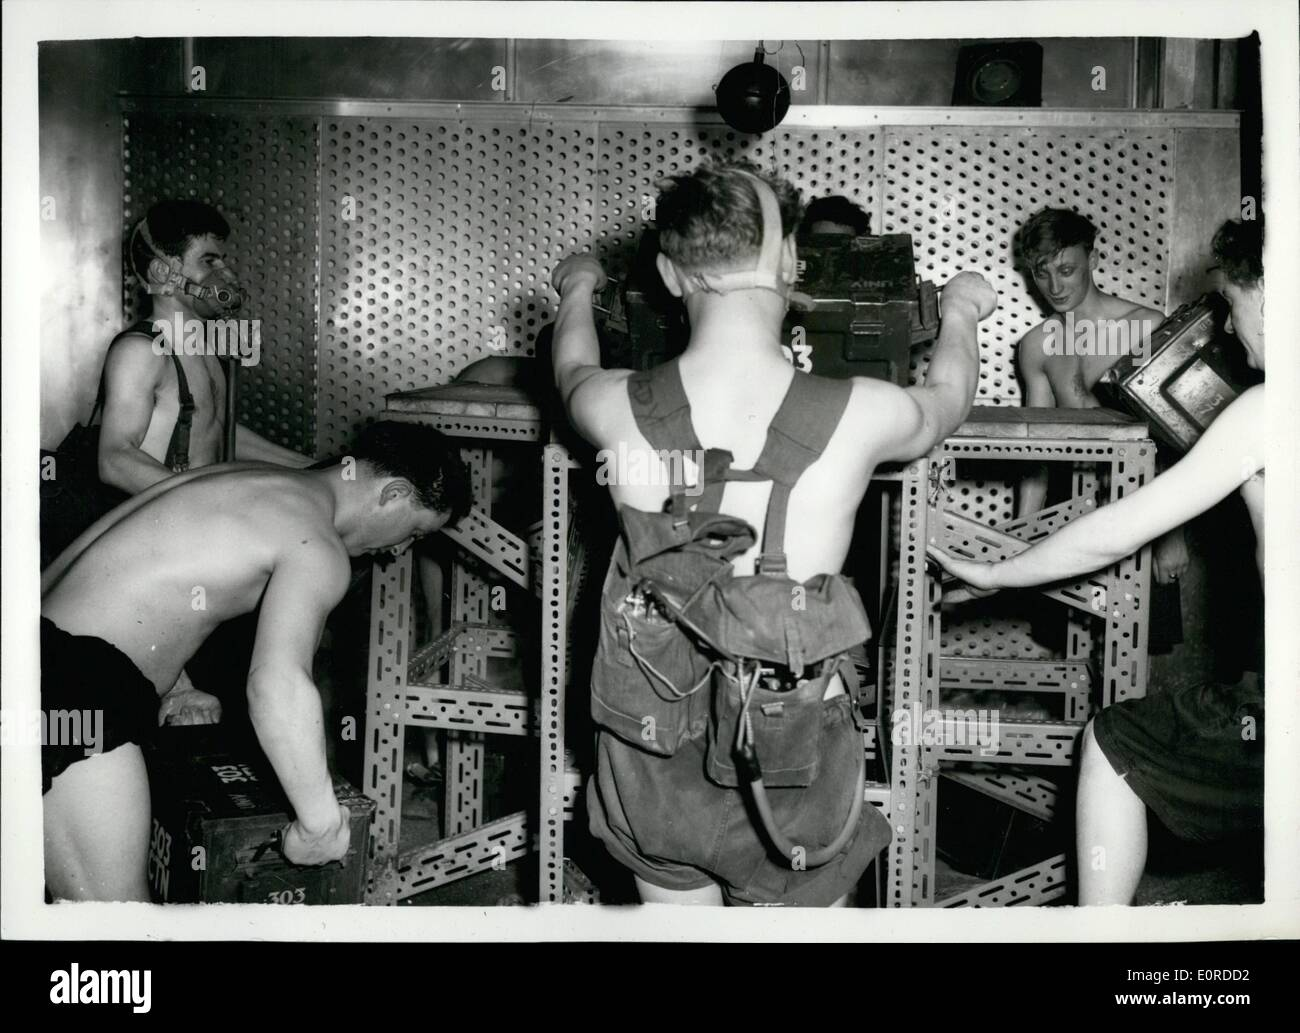 Mar. 03, 1959 - Army Personnel undergo ''Heat Test'': Volunteer Army Personnel are now undergoing a series of ''Heat Test'' at the Army Research Establishment at Hampstead. The tests include lifting 50 lb tailboards in a room with humidity temp of Dewpoint 84. This is carried out in four hour periods of 30 mins. break which includes recording periods . at the end of each period four men observers examine the volunteers condition of breathing pulse etc. Throughout each test the volunteers wear an IMP mask (Integrating Motor Pneumotachograph) which records breathing oxygen contents etc - Stock Image